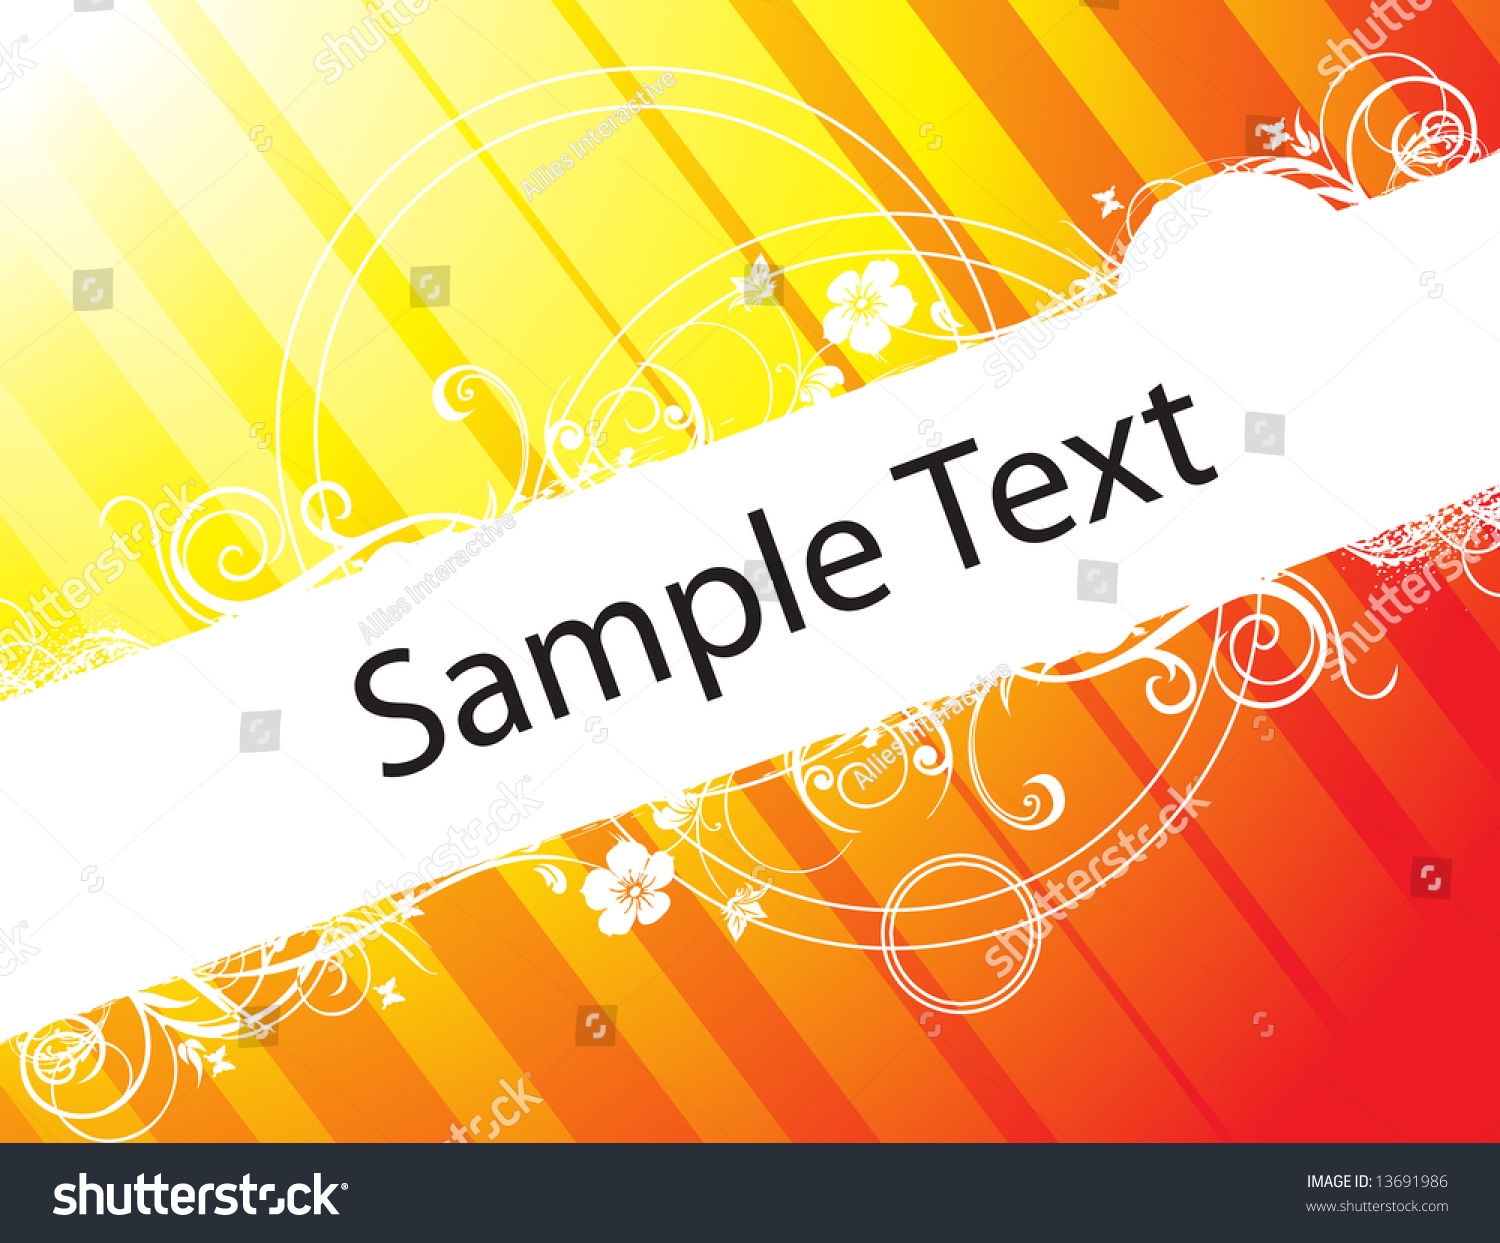 Abstract Floral Vector Design Element For Sample Text In